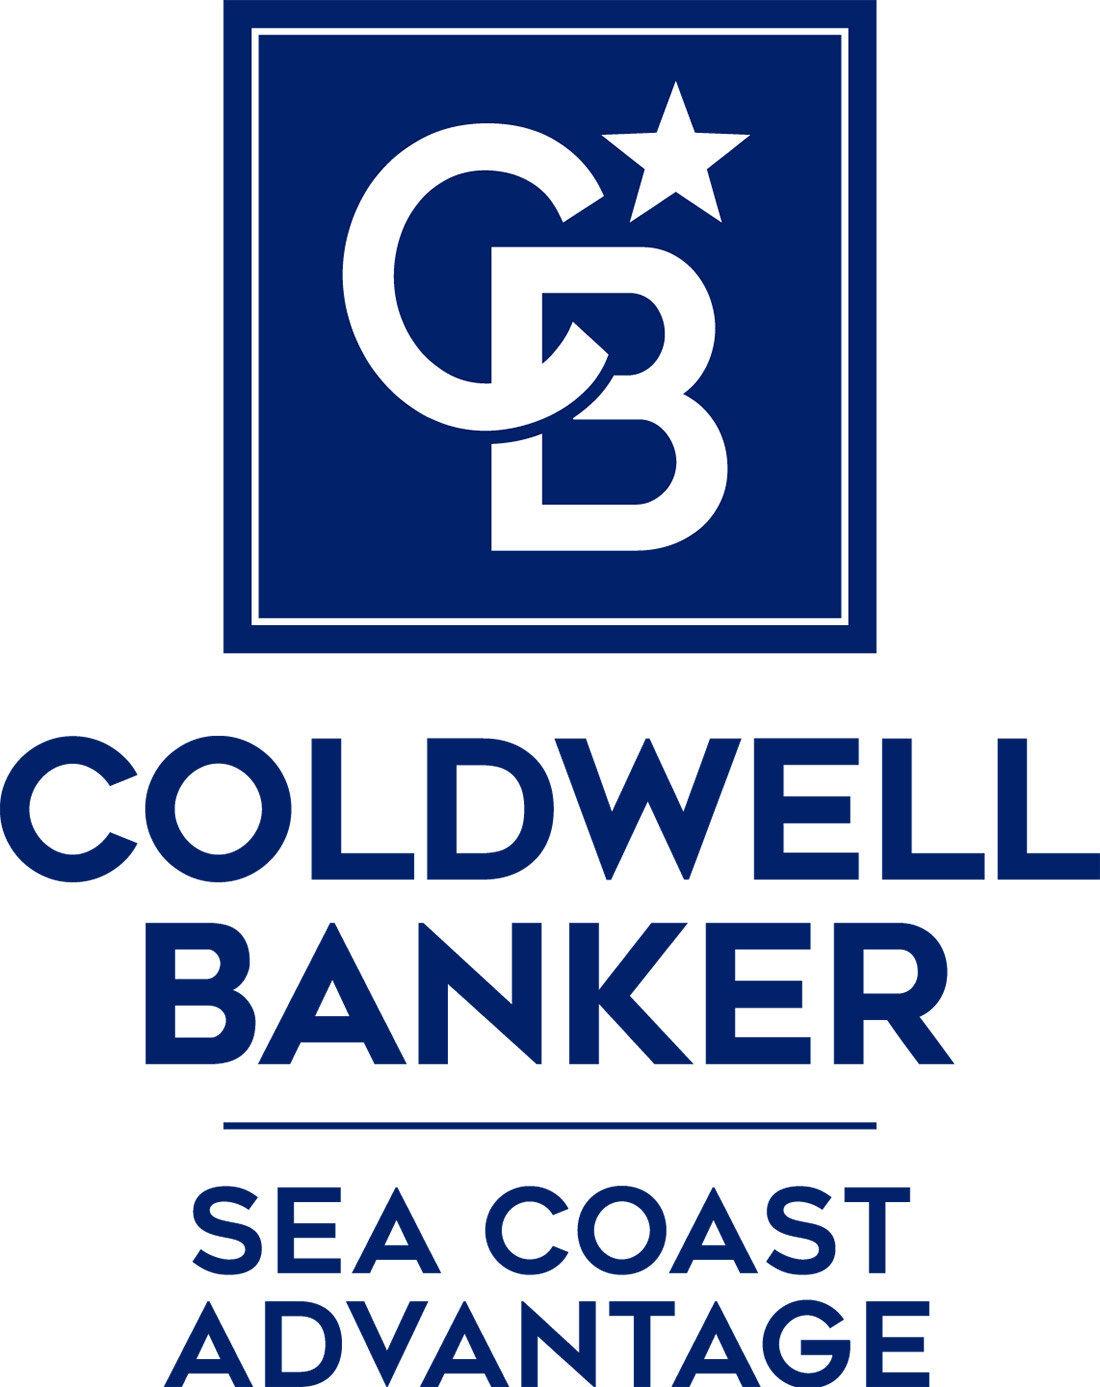 Mike Crowell - Coldwell Banker Sea Coast Advantage Realty